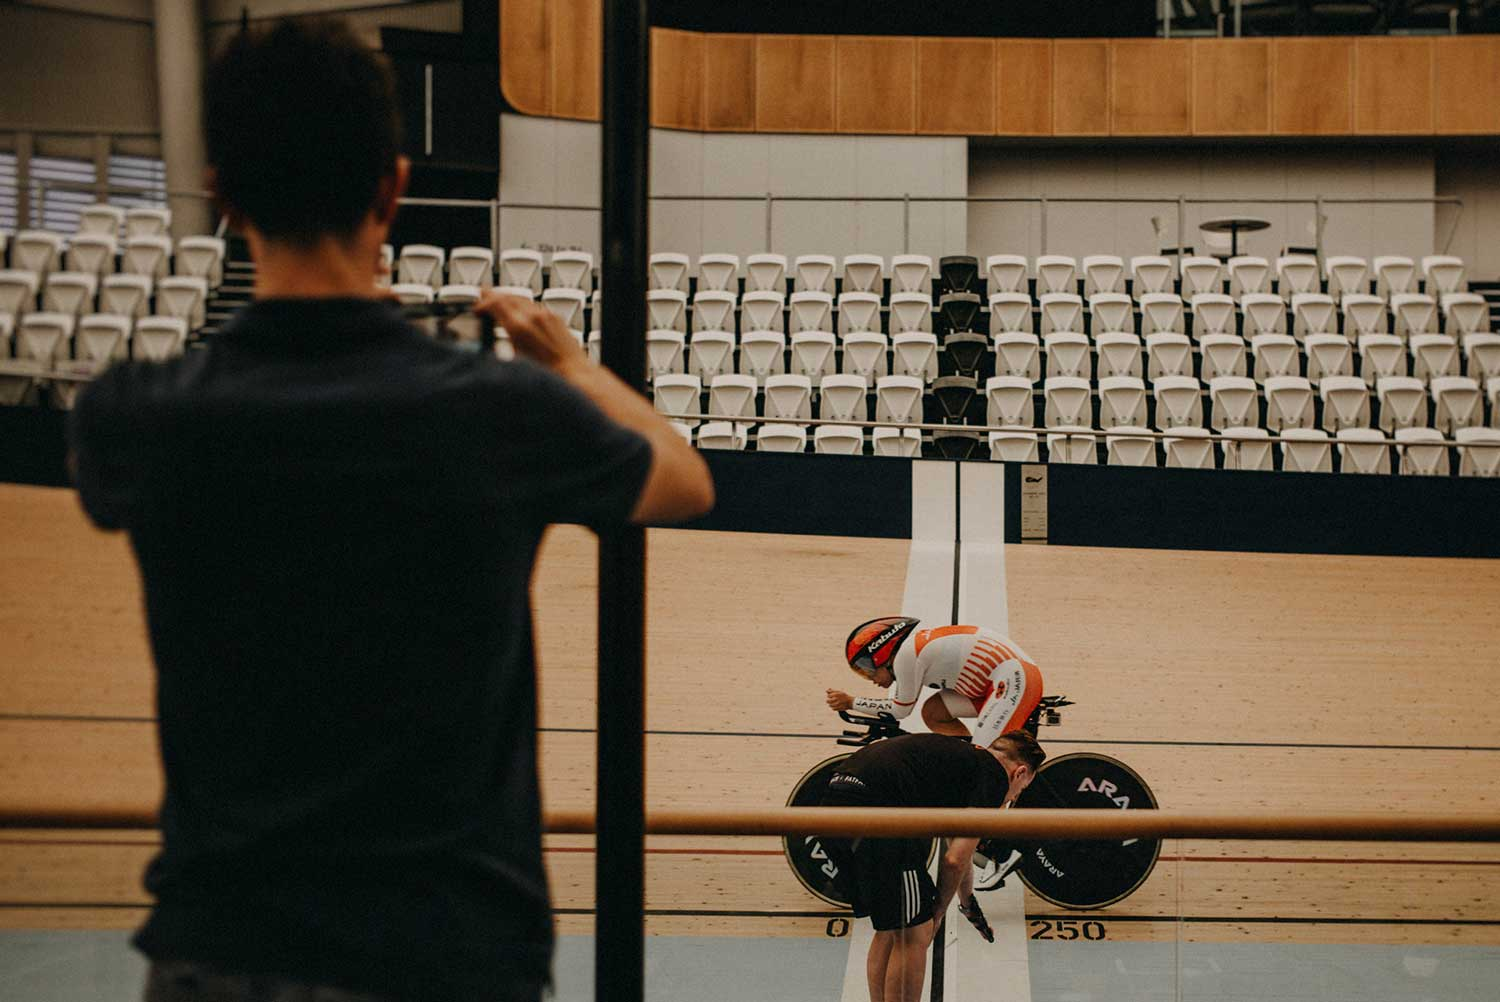 Japanese cyclist crosses finish line whilst training at velodrome for time trial with coaches watching